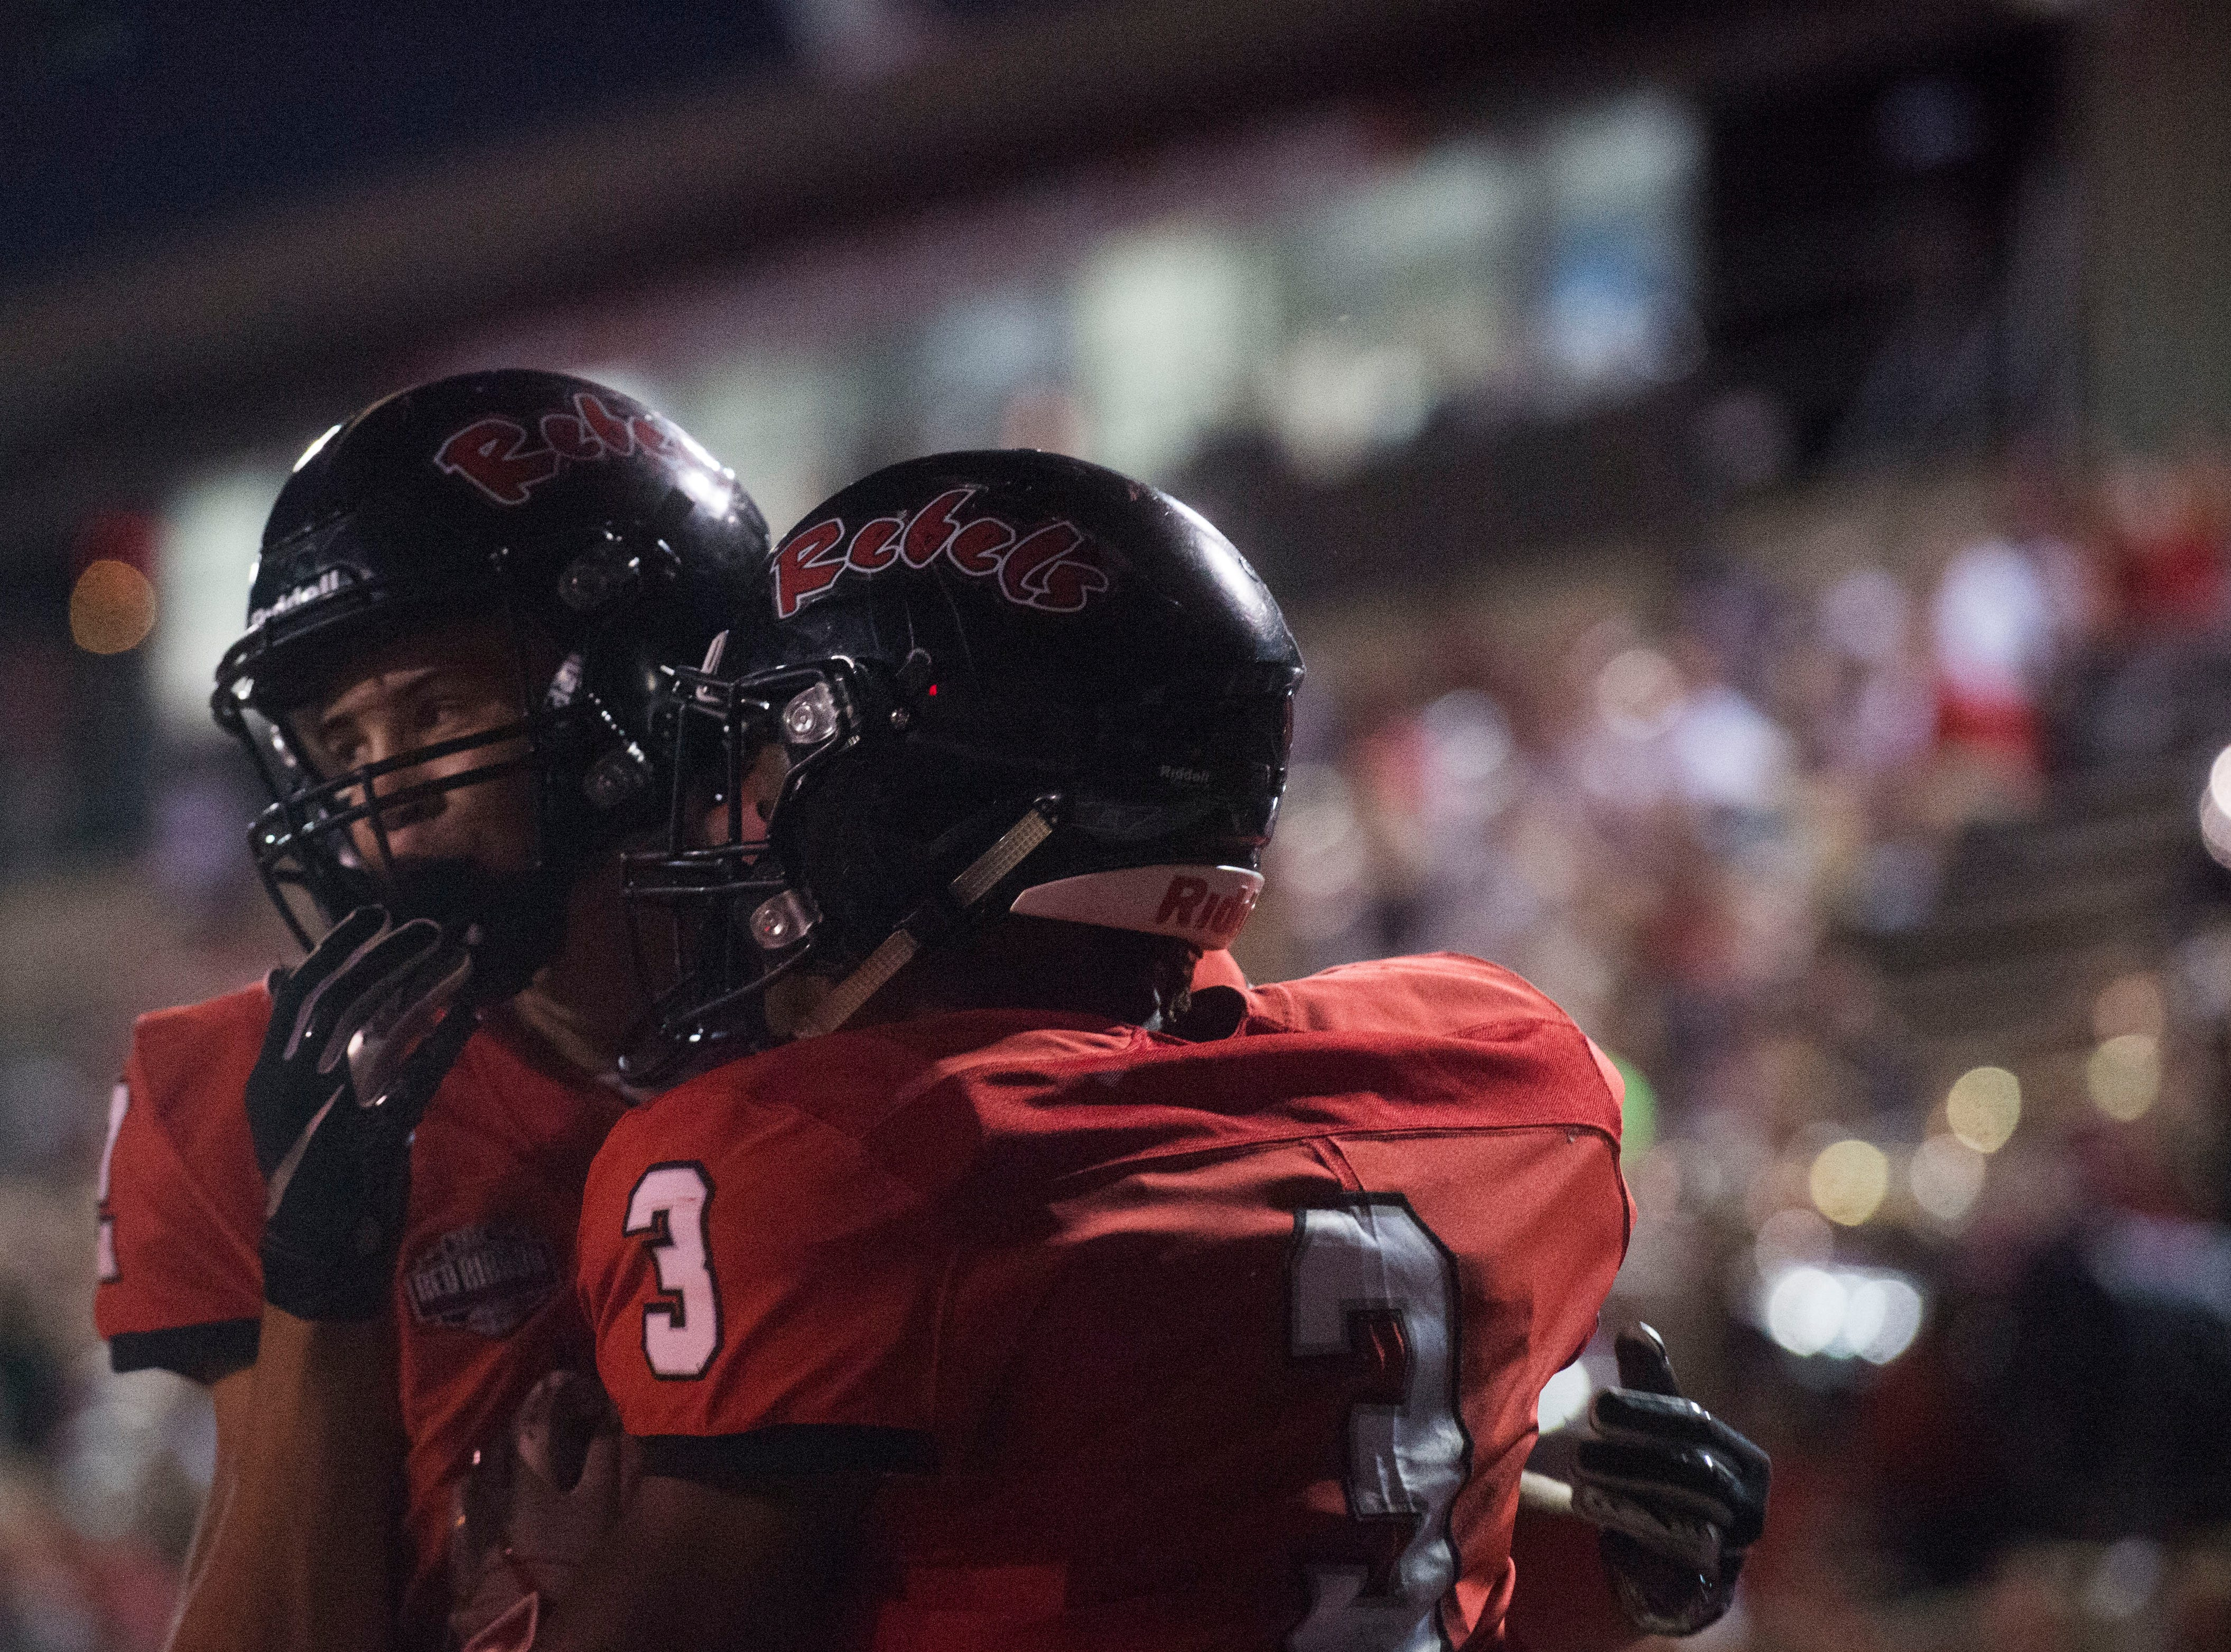 Maryville's A.J. Davis (3) celebrates with Maryville's Ashton Maples (2) after his touchdown during a game between Cleveland and Maryville at Maryville Thursday, Oct. 4, 2018. Maryville defeated Cleveland 42-7.